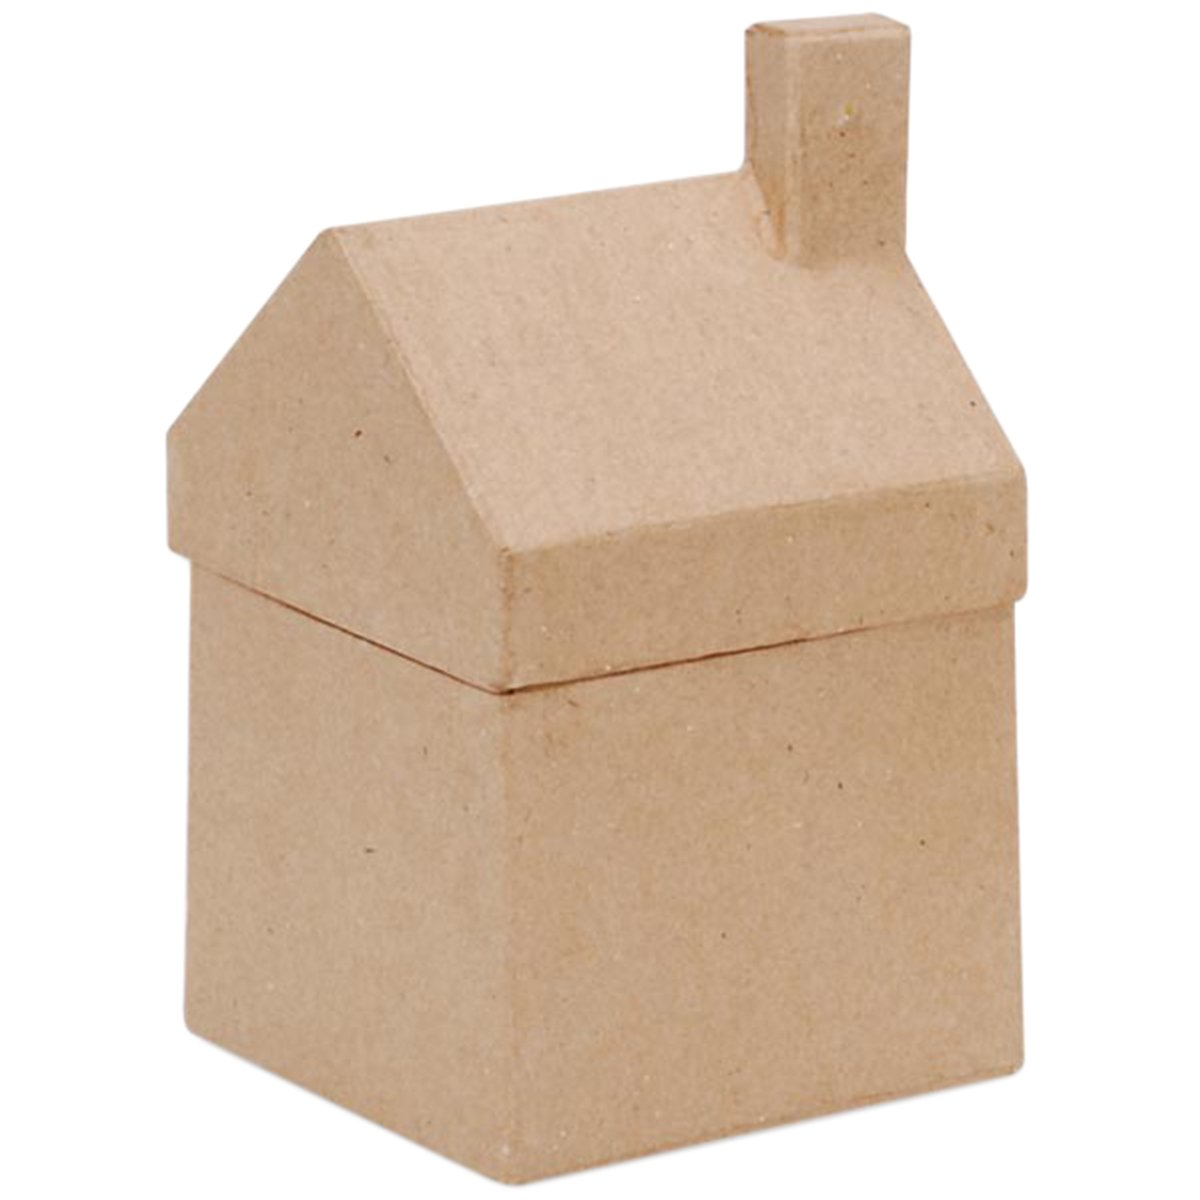 Paper Mache House Box - 3-1/2 x 6-1/4 x 3-5/8 in Darice 2863-05